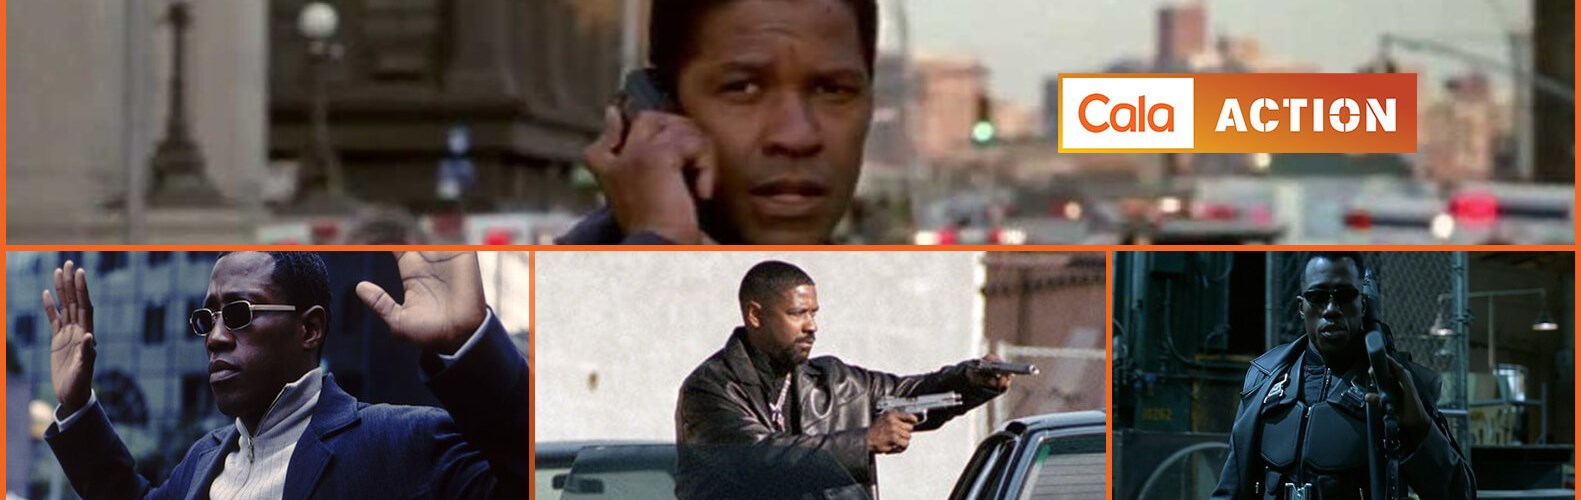 CalaAction - Denzel Washington vs. Wesley Snipes